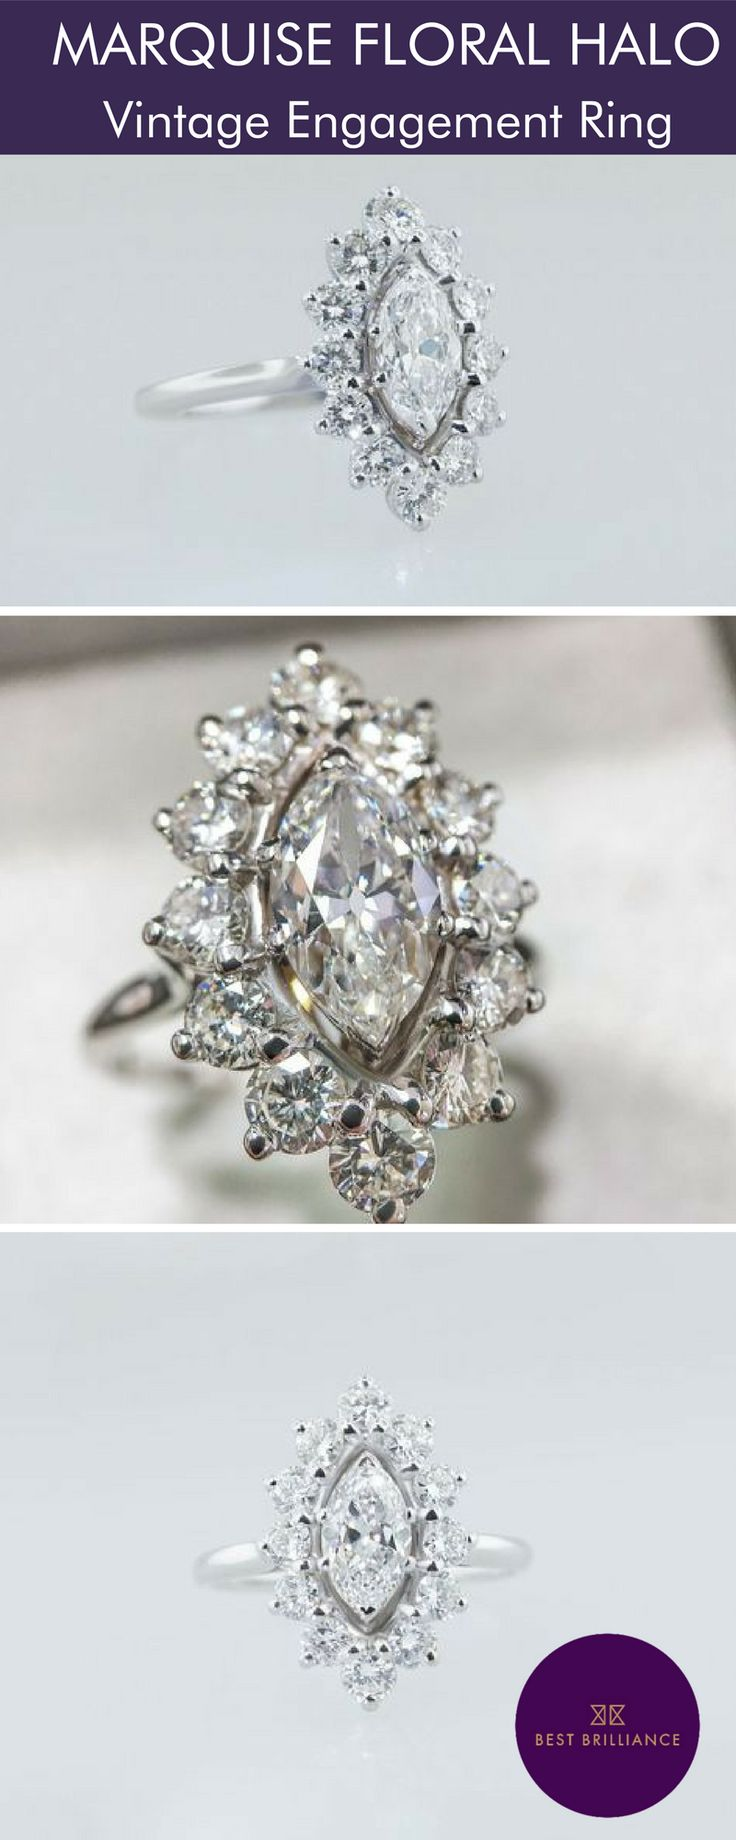 Descriptiona carat f marquise center diamond is mounted along with carat side diamonds in a white gold halo style setting on a delicate shank total carat